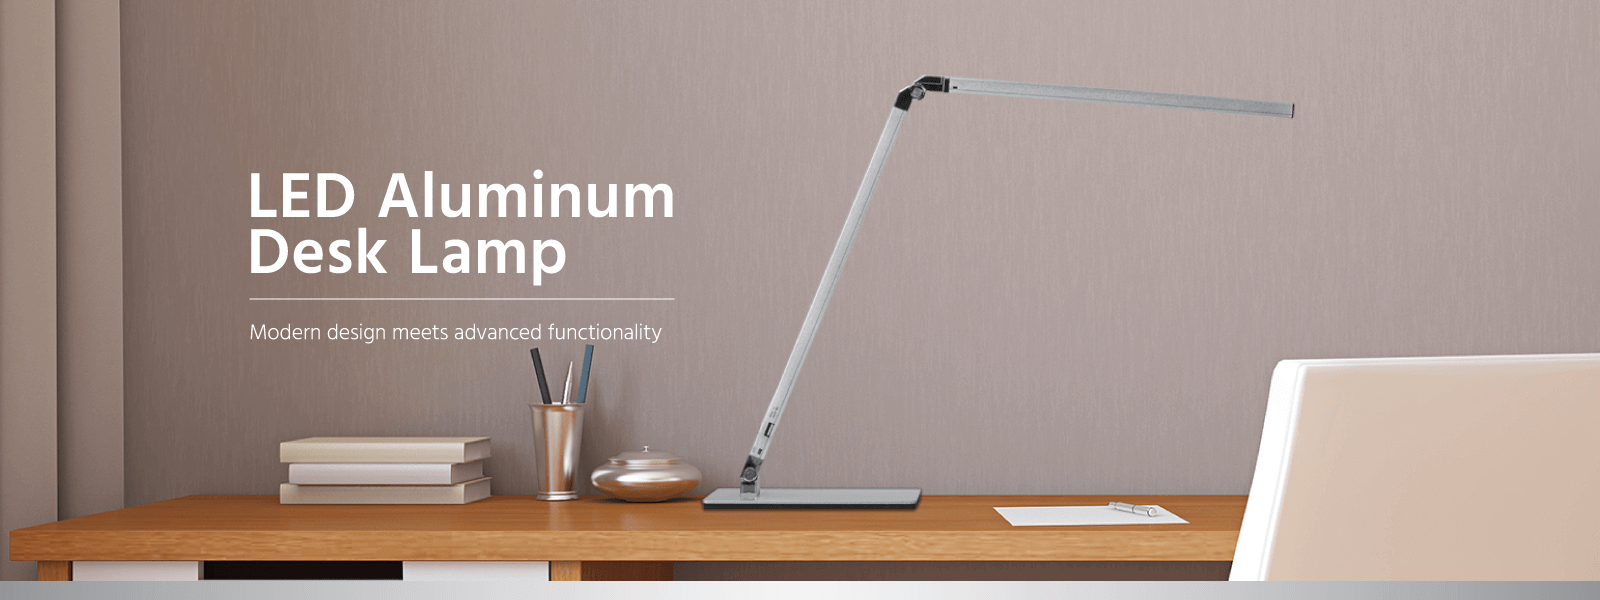 Led Aluminum Desk Lamp Silver